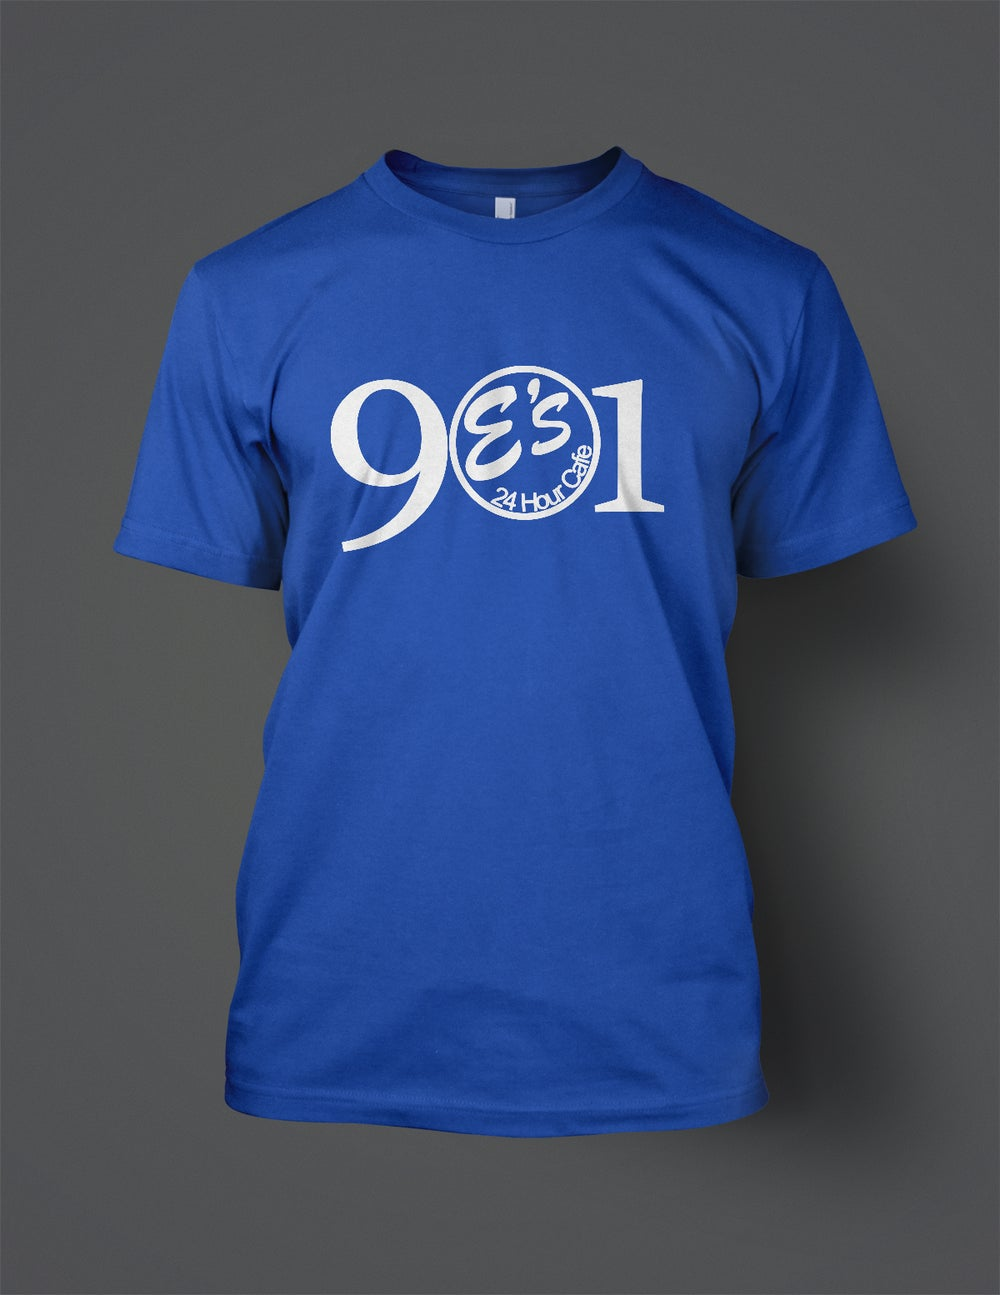 Image of Royal Blue 901 E's Tee